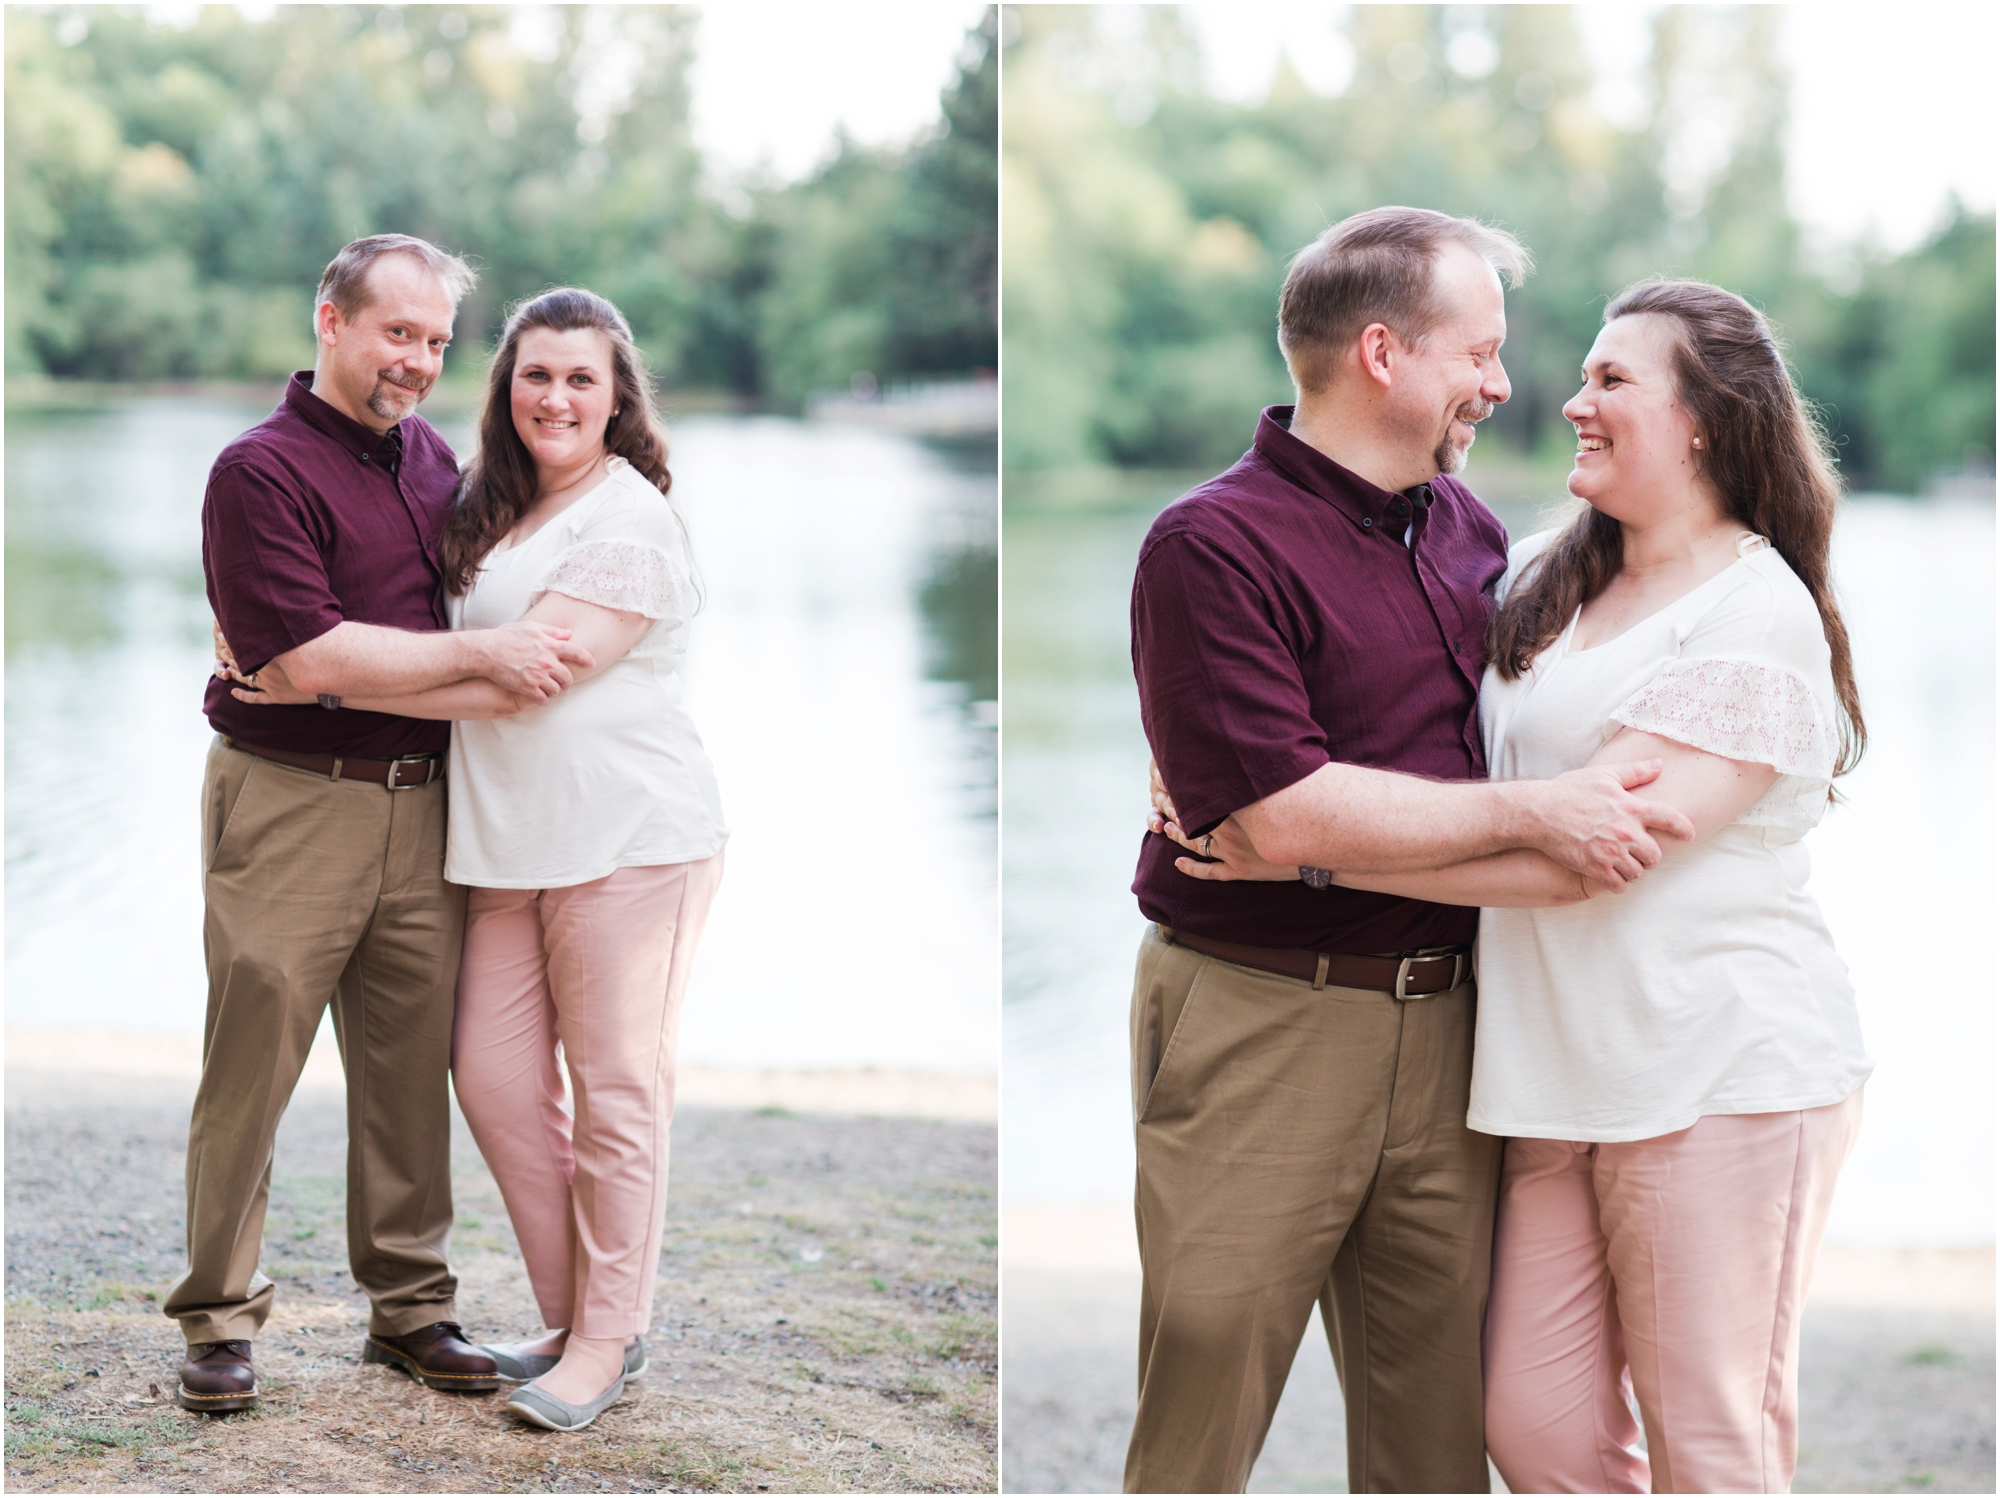 Family portraits at Bradley Lake Park in Puyallup, WA. Photos by Briana Calderon Photography based in the greater Seattle-Tacoma Area._1371.jpg